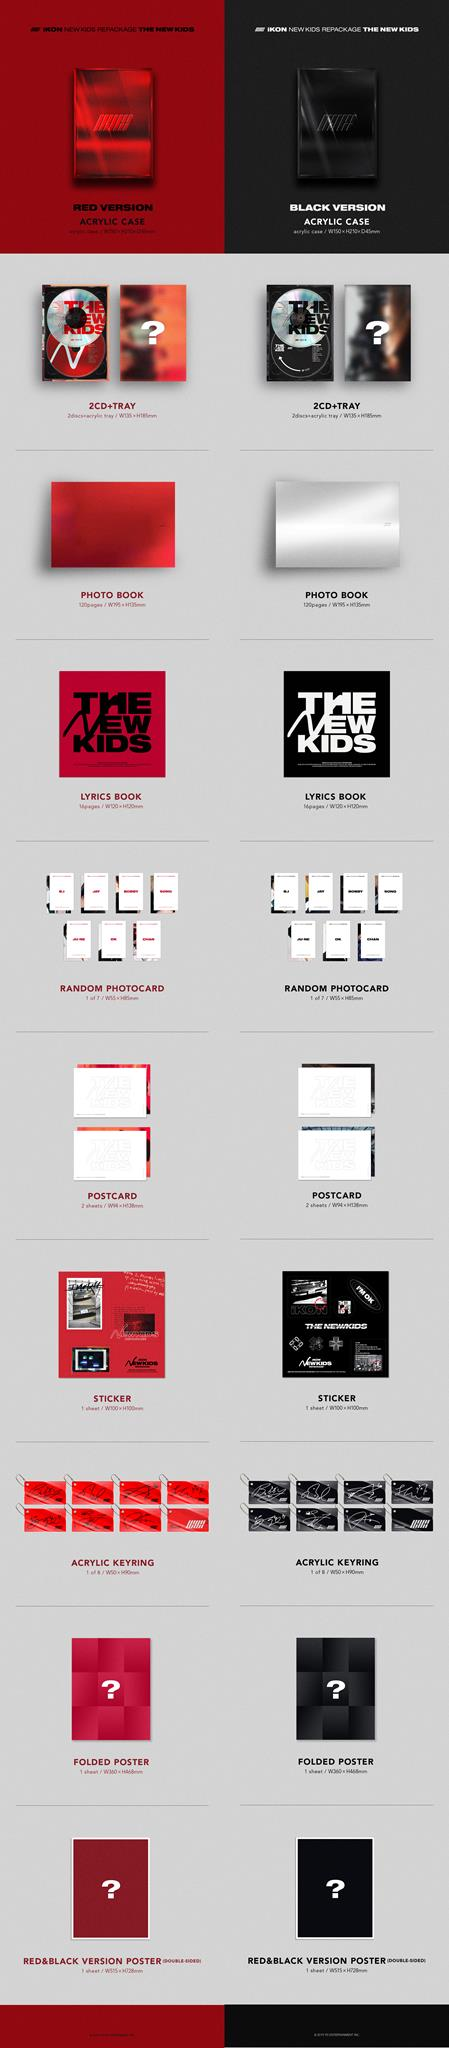 Details about iKON NEW KIDS REPACKAGE: [THE NEW KIDS]  CD+Photobook+Card+Etc+Tracking Code